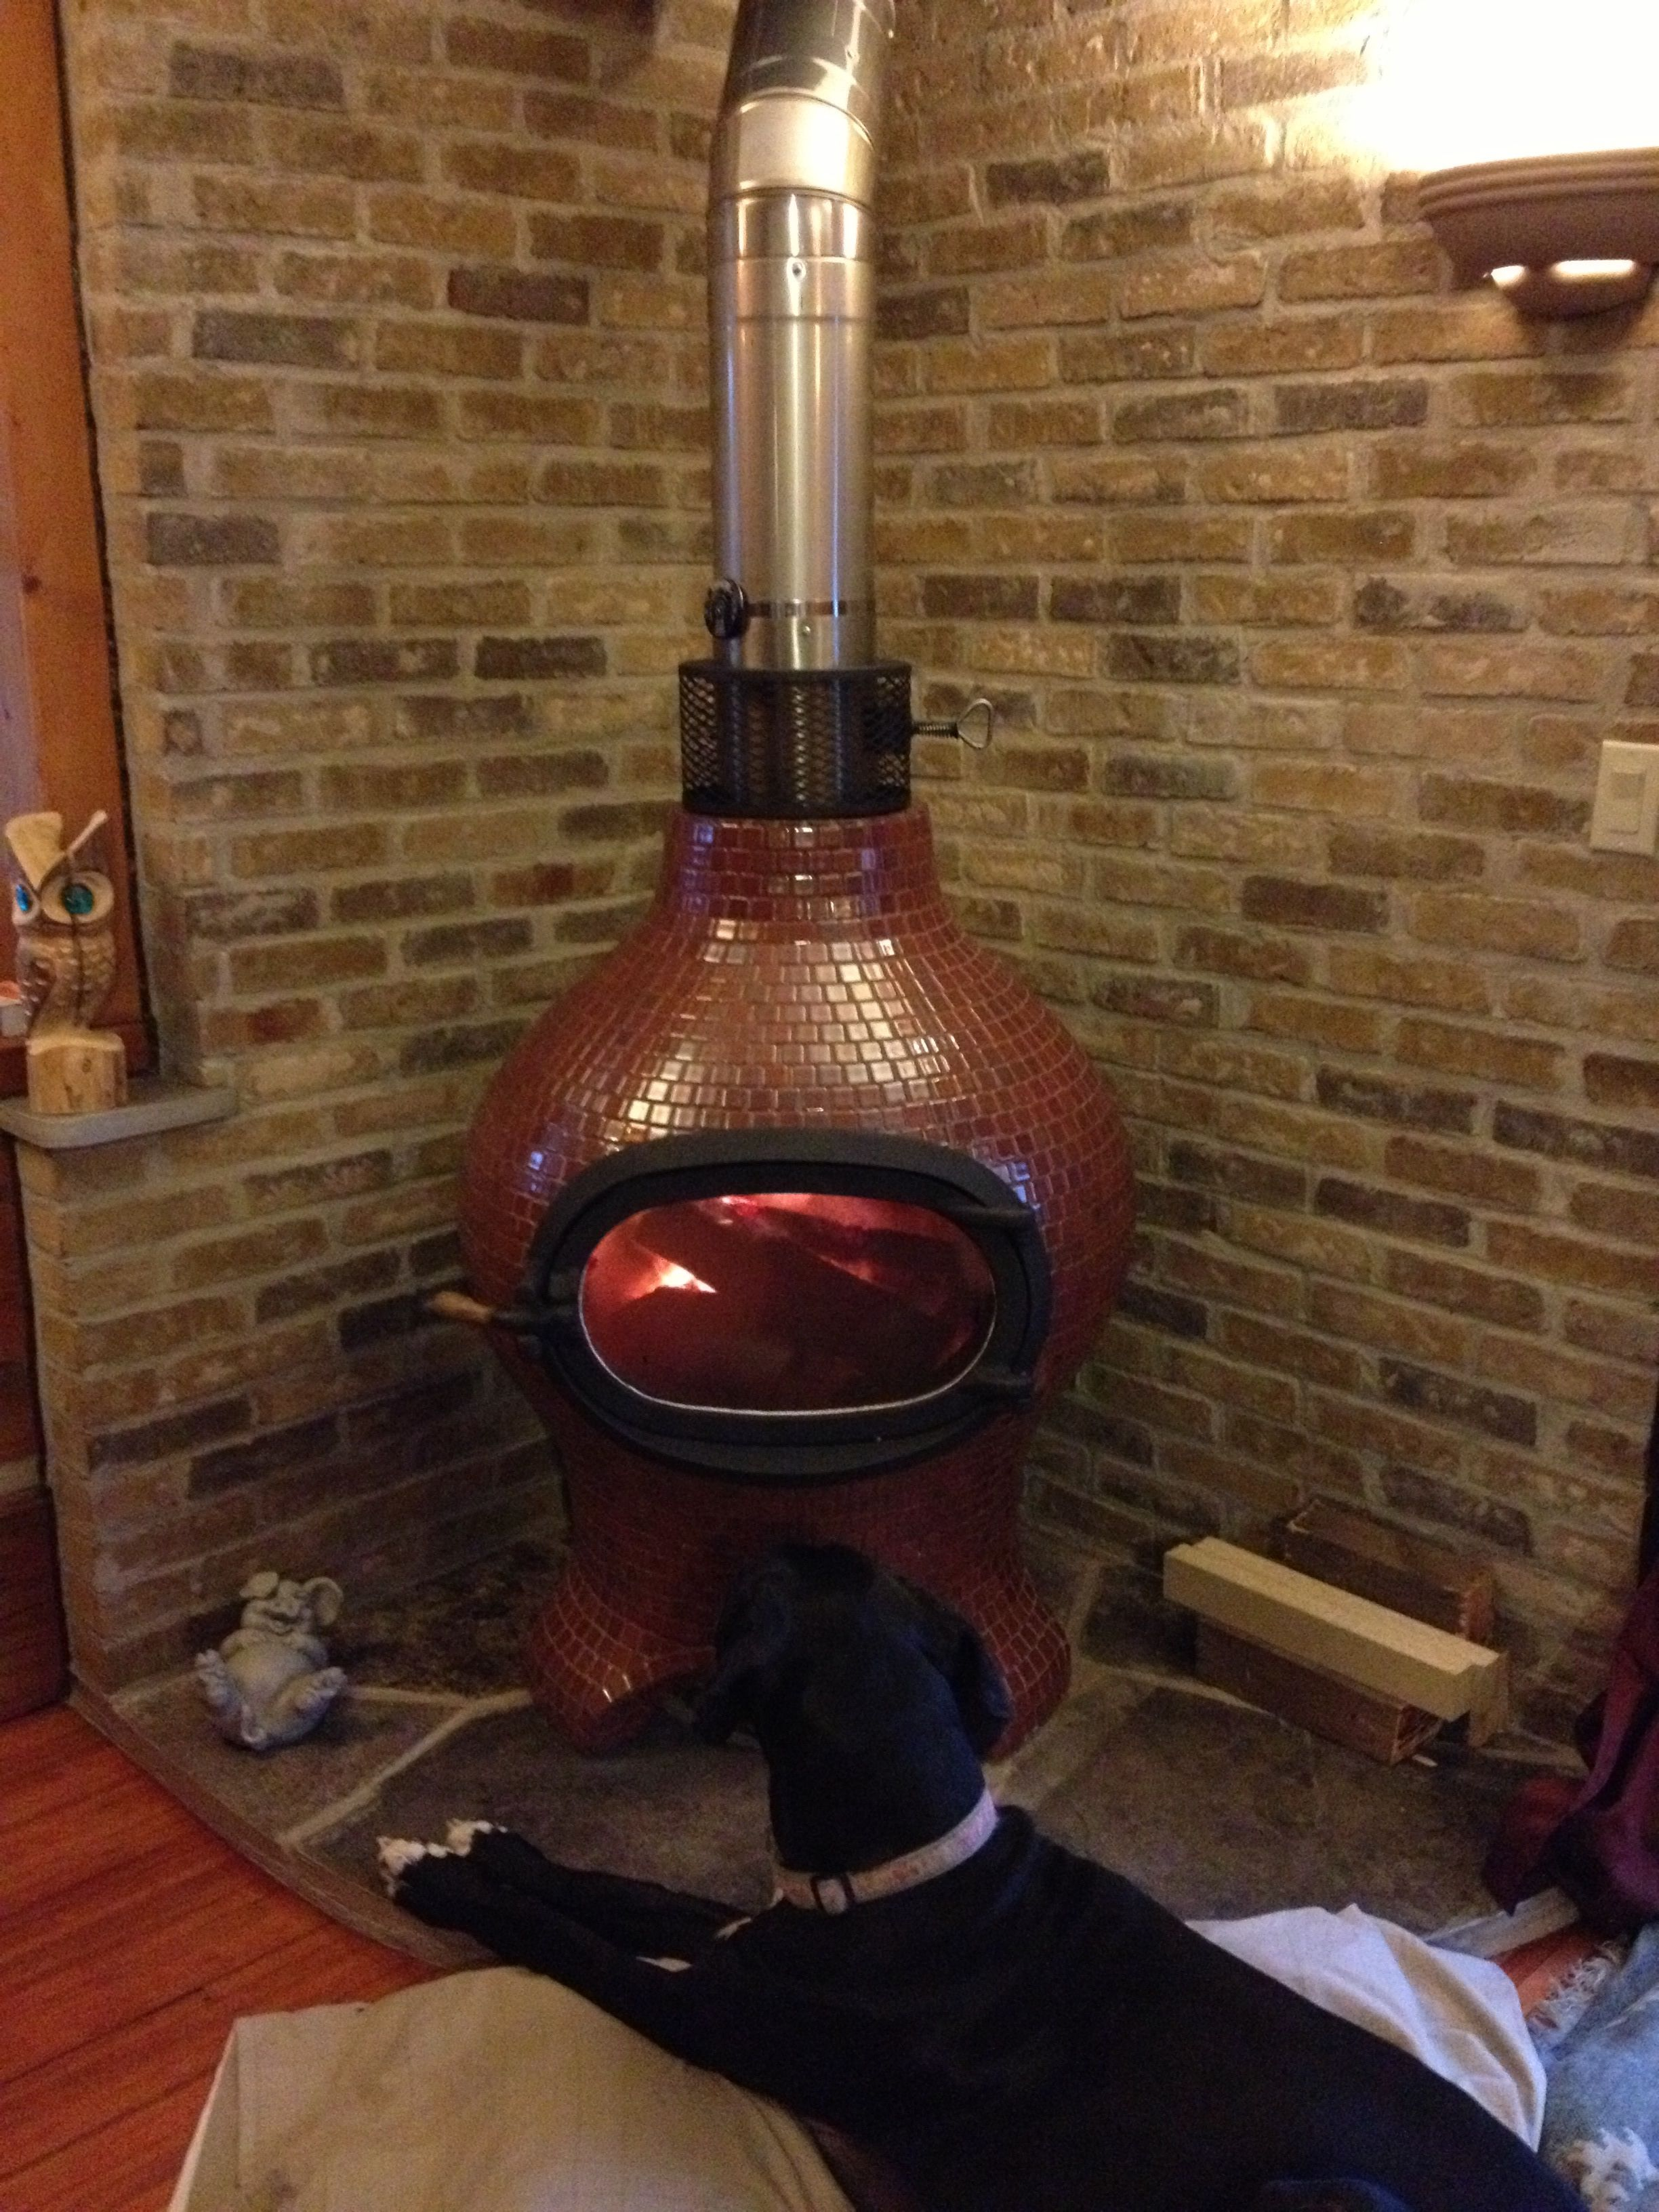 I Love My Meridian Wood Stove Outdoor Cooking Stove Cooking